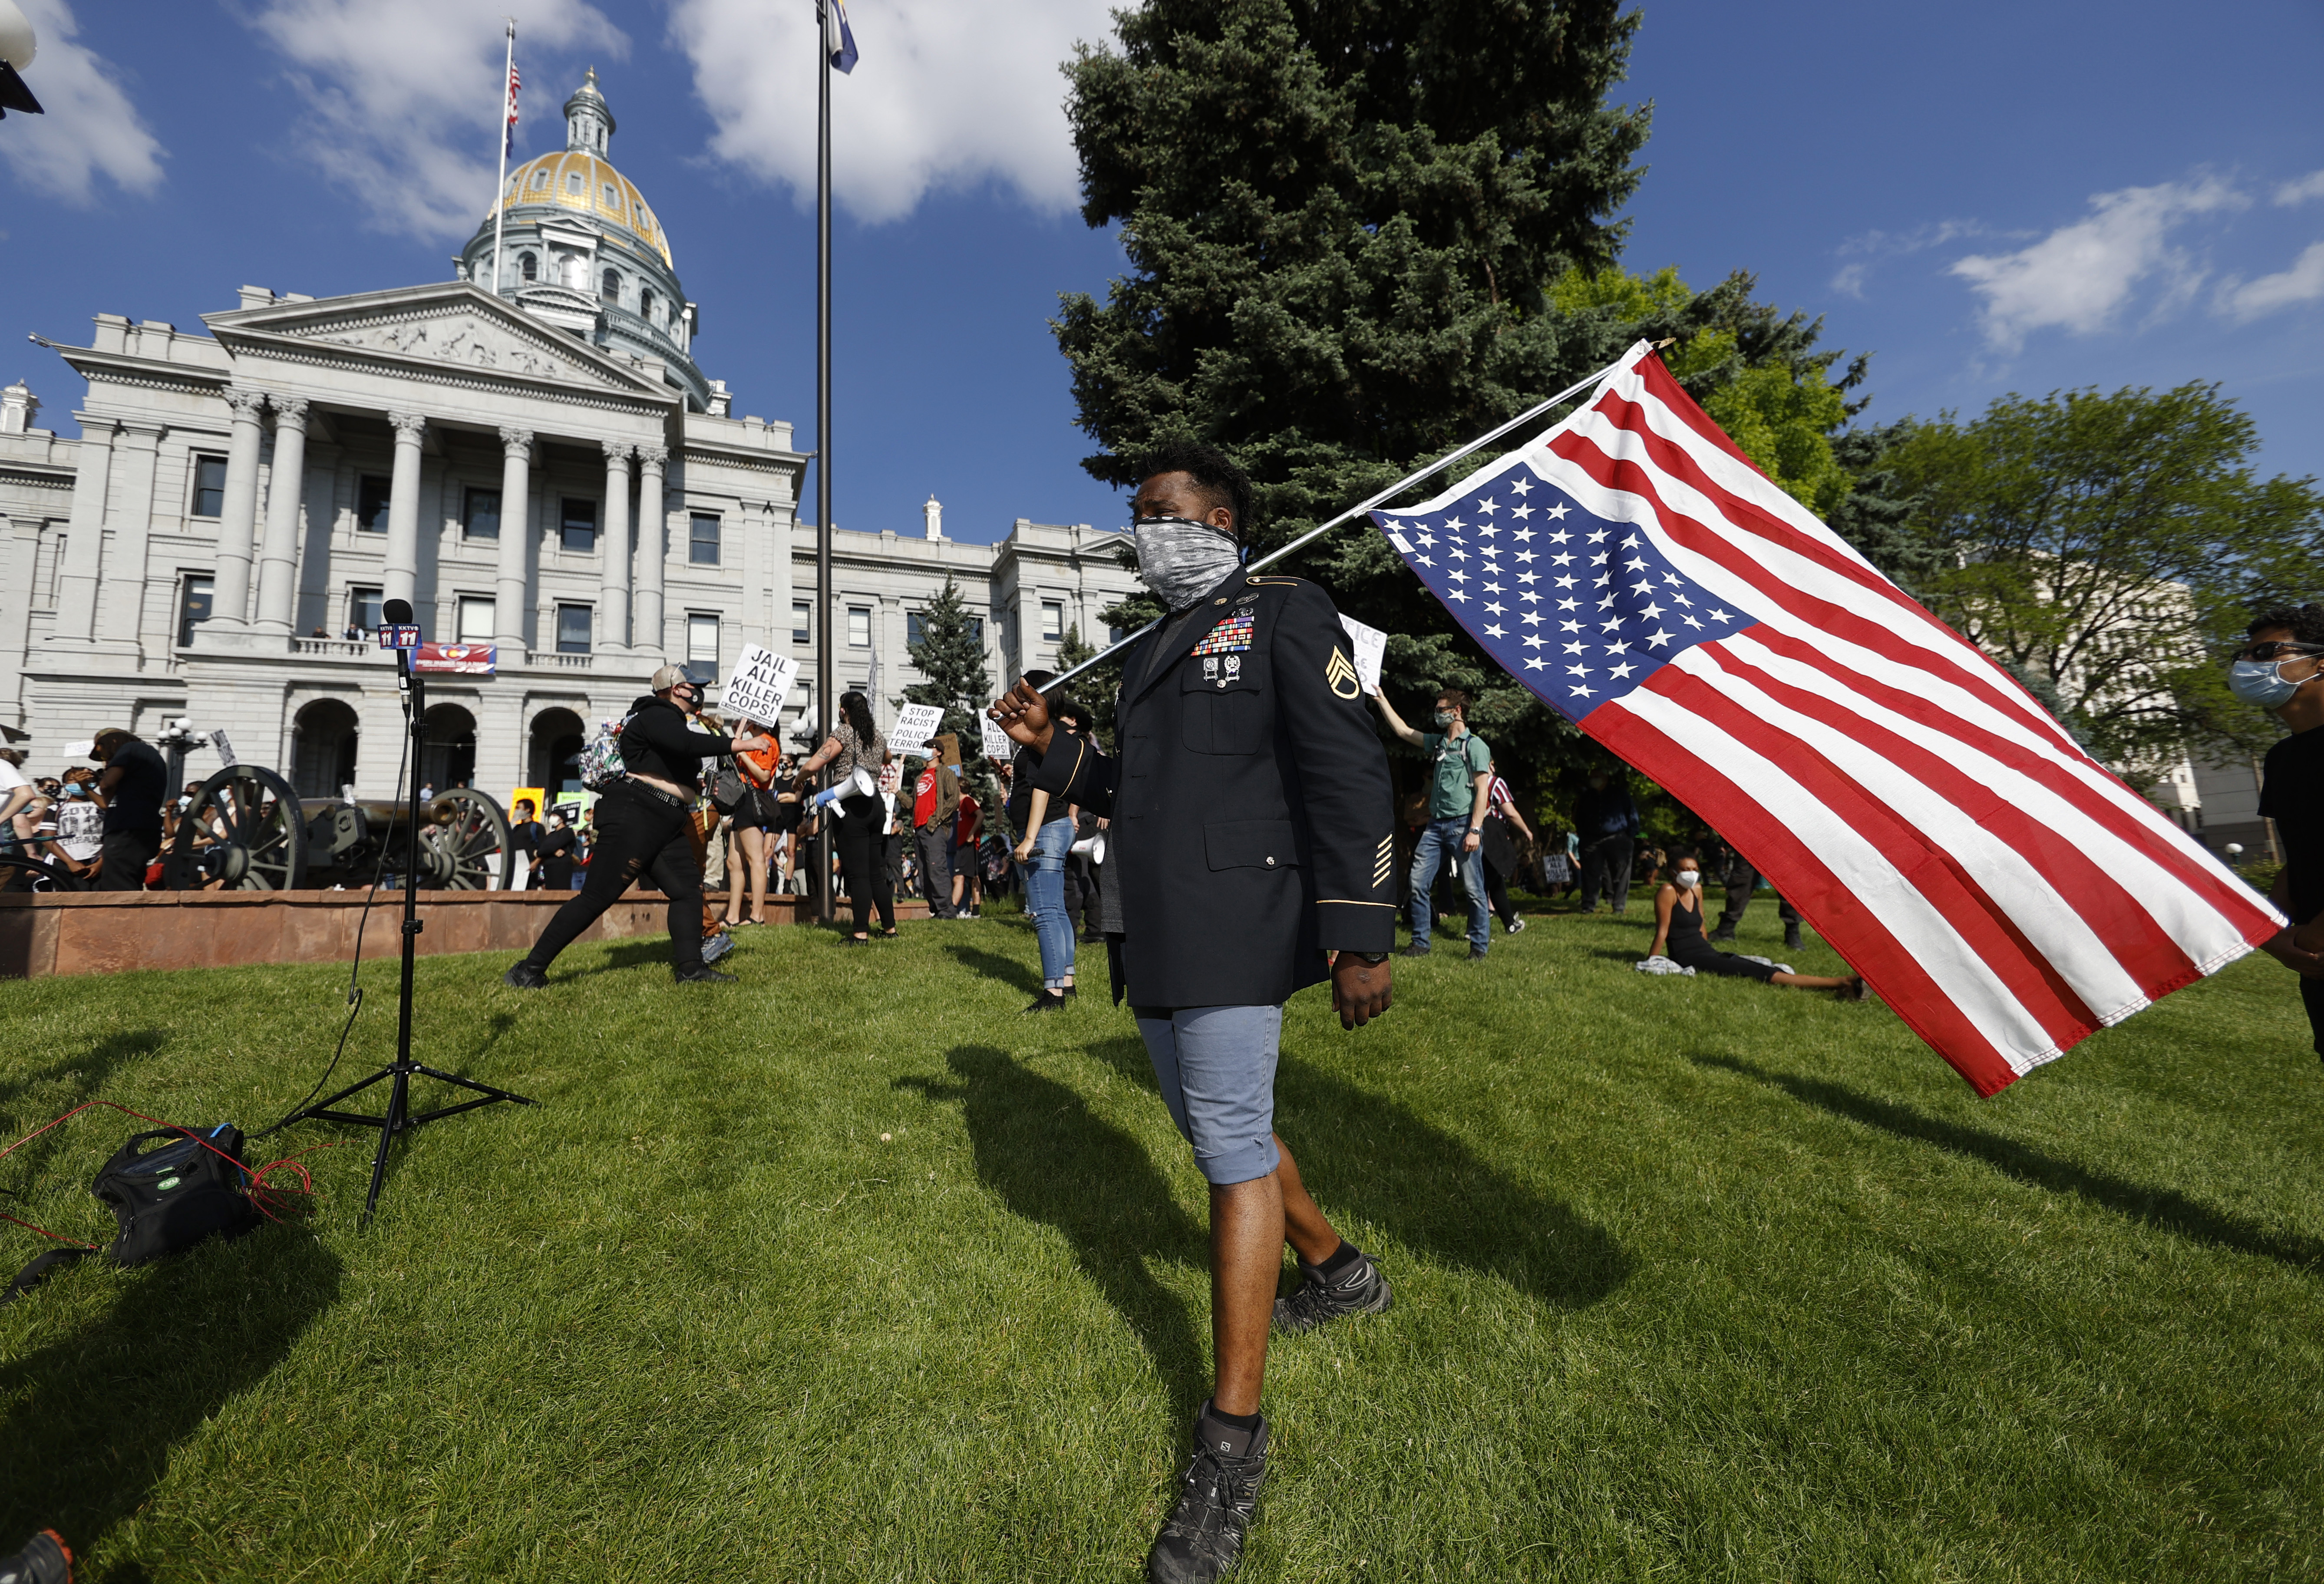 Aubrey Rose, who earned the rank of staff sergeant while serving four tours of duty in the U.S. Army, carries a flag during a protest outside the State Capitol over the death of George Floyd, a handcuffed black man in police custody in Minneapolis, Thursday, May 28, 2020, in Denver. Close to 1,000 protesters walked from the Capitol down the 16th Street pedestrian mall during the protest. (AP Photo/David Zalubowski)